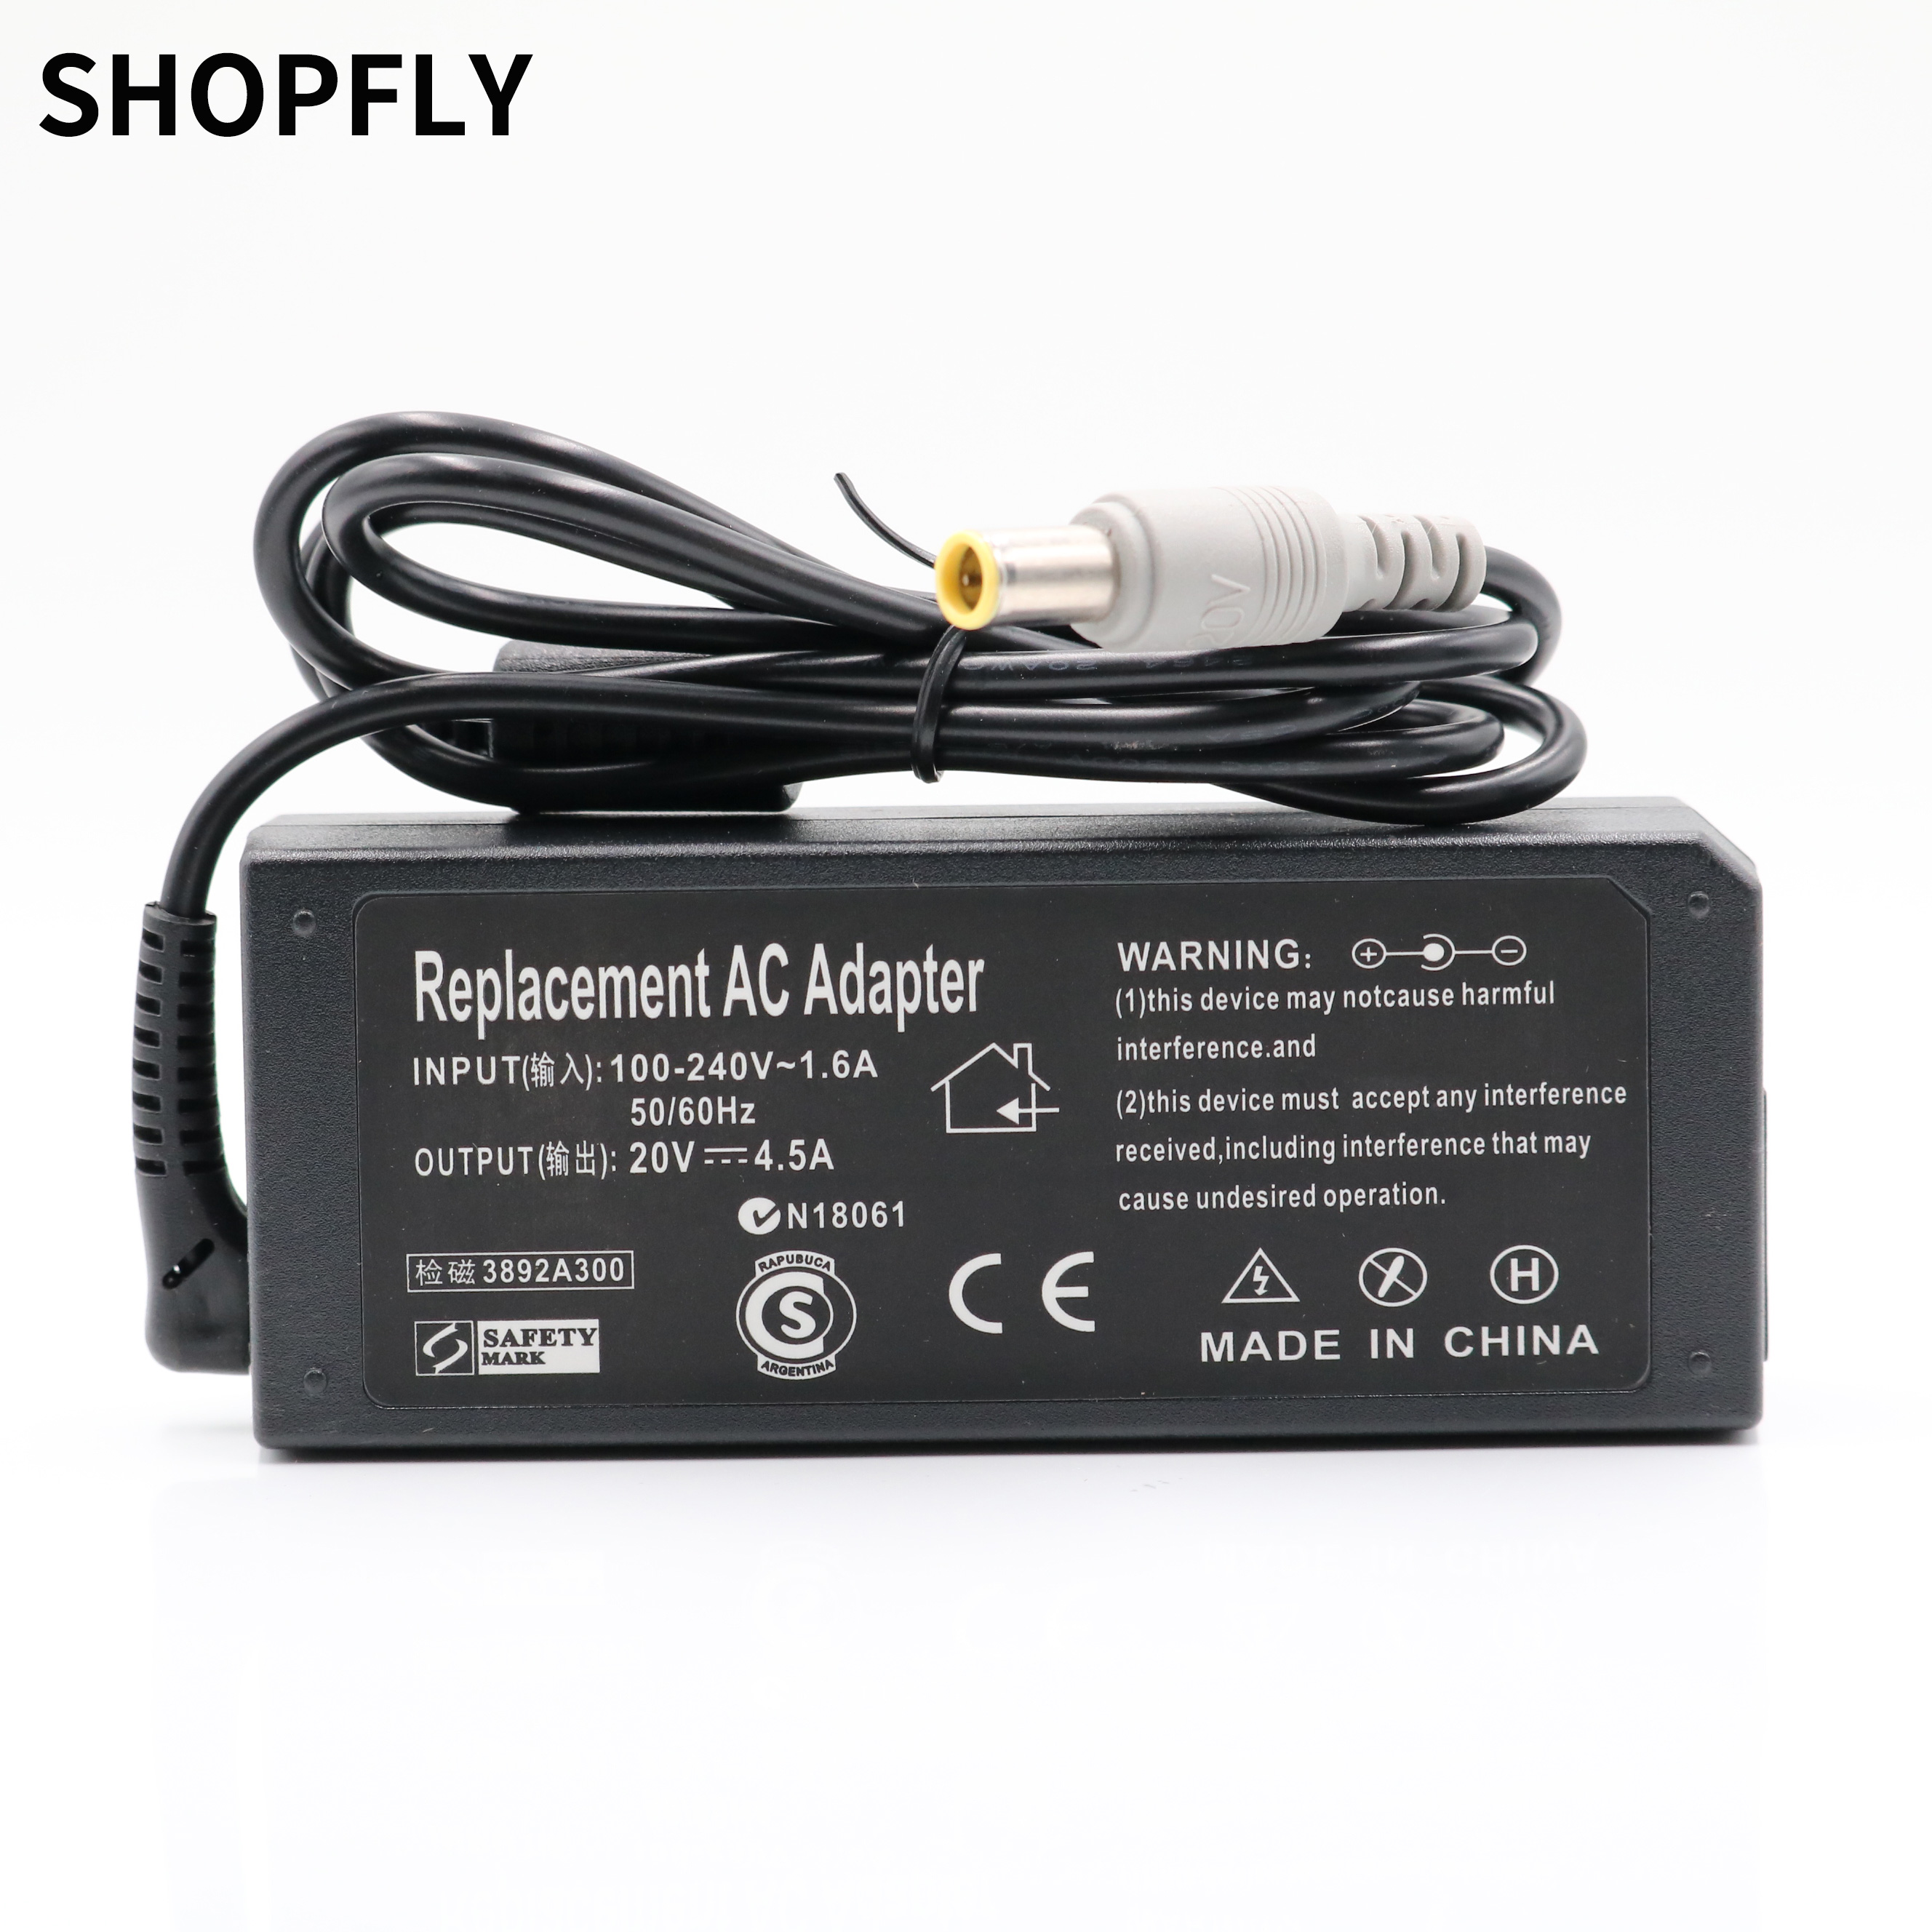 20V 4.5A 90W Laptop Ac Adapter Charger For Lenovo / Thinkpad T400 T410 T420 T430 T500 T510 T520 T530 T400s T410s T410i